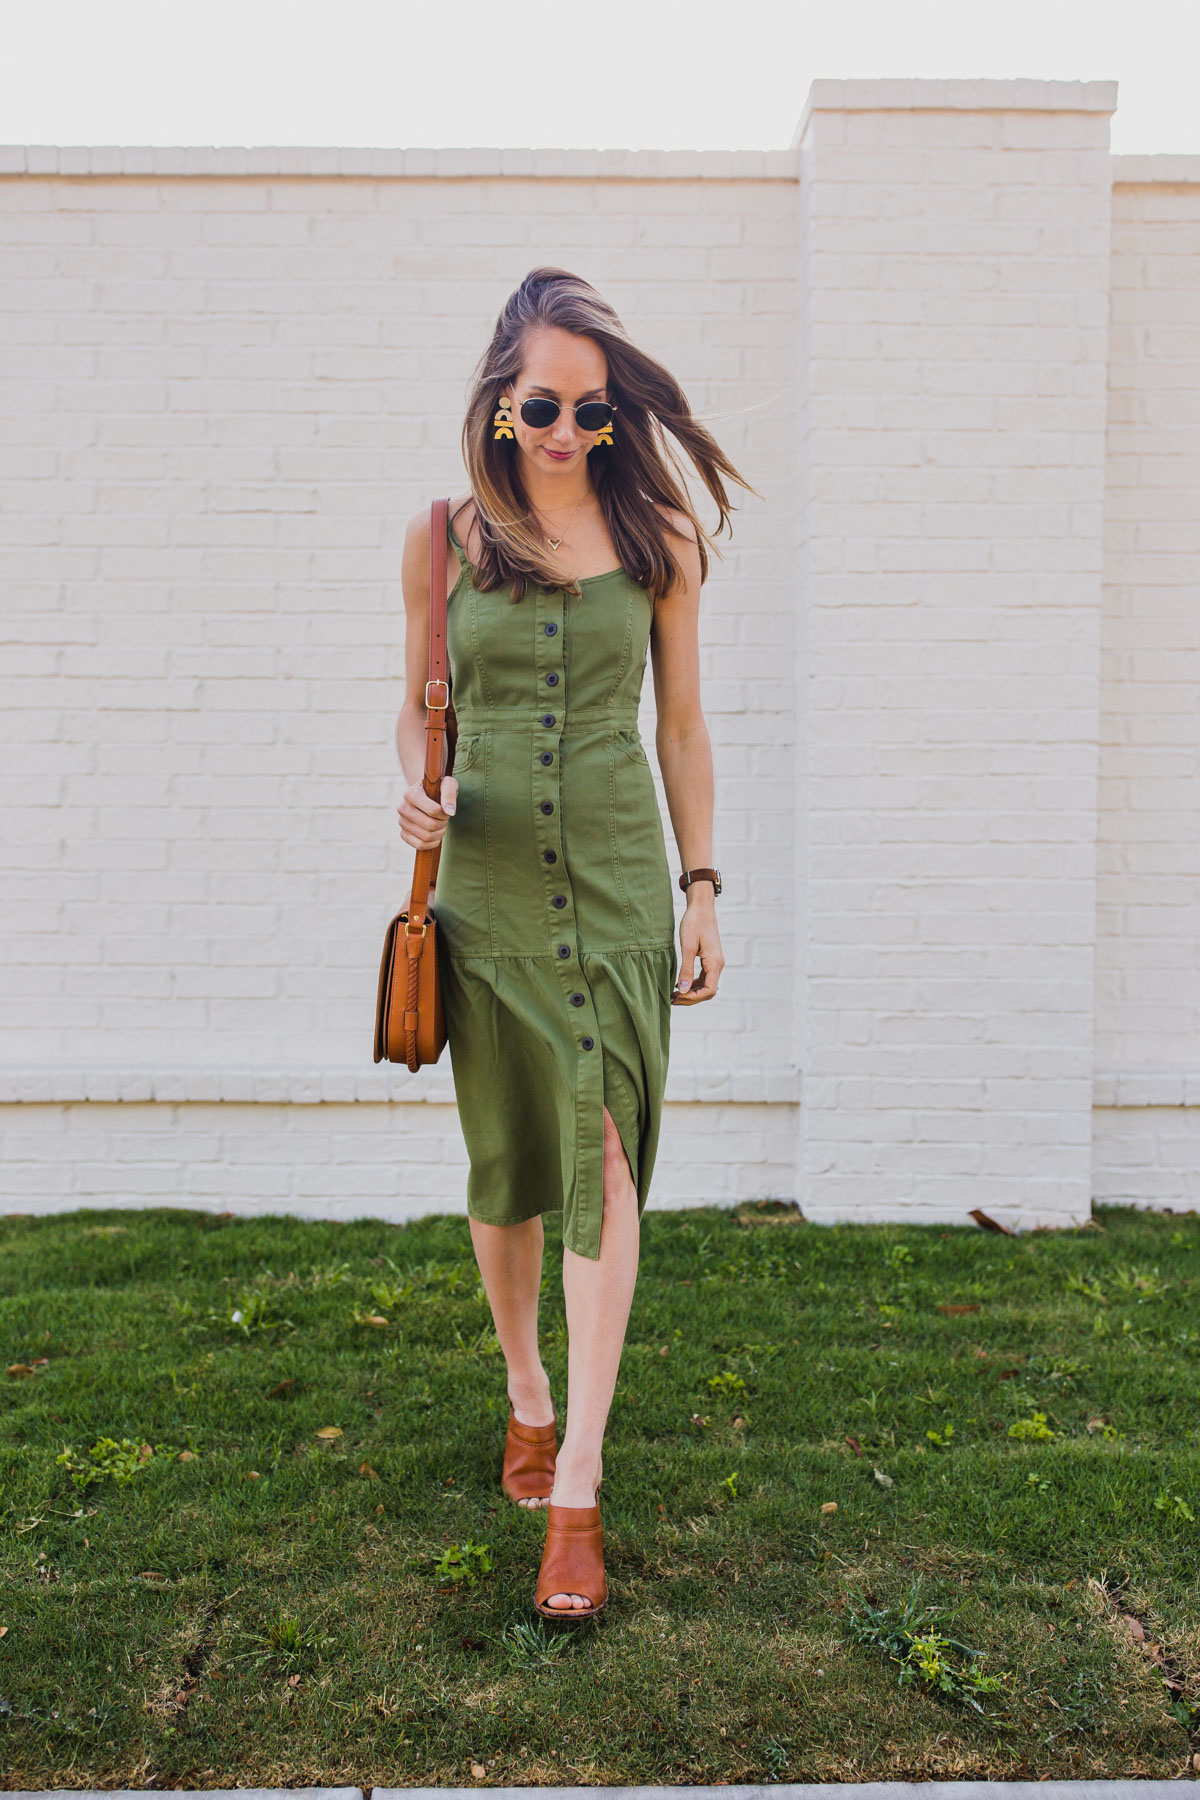 outfit ideas for women: midi dress outfit